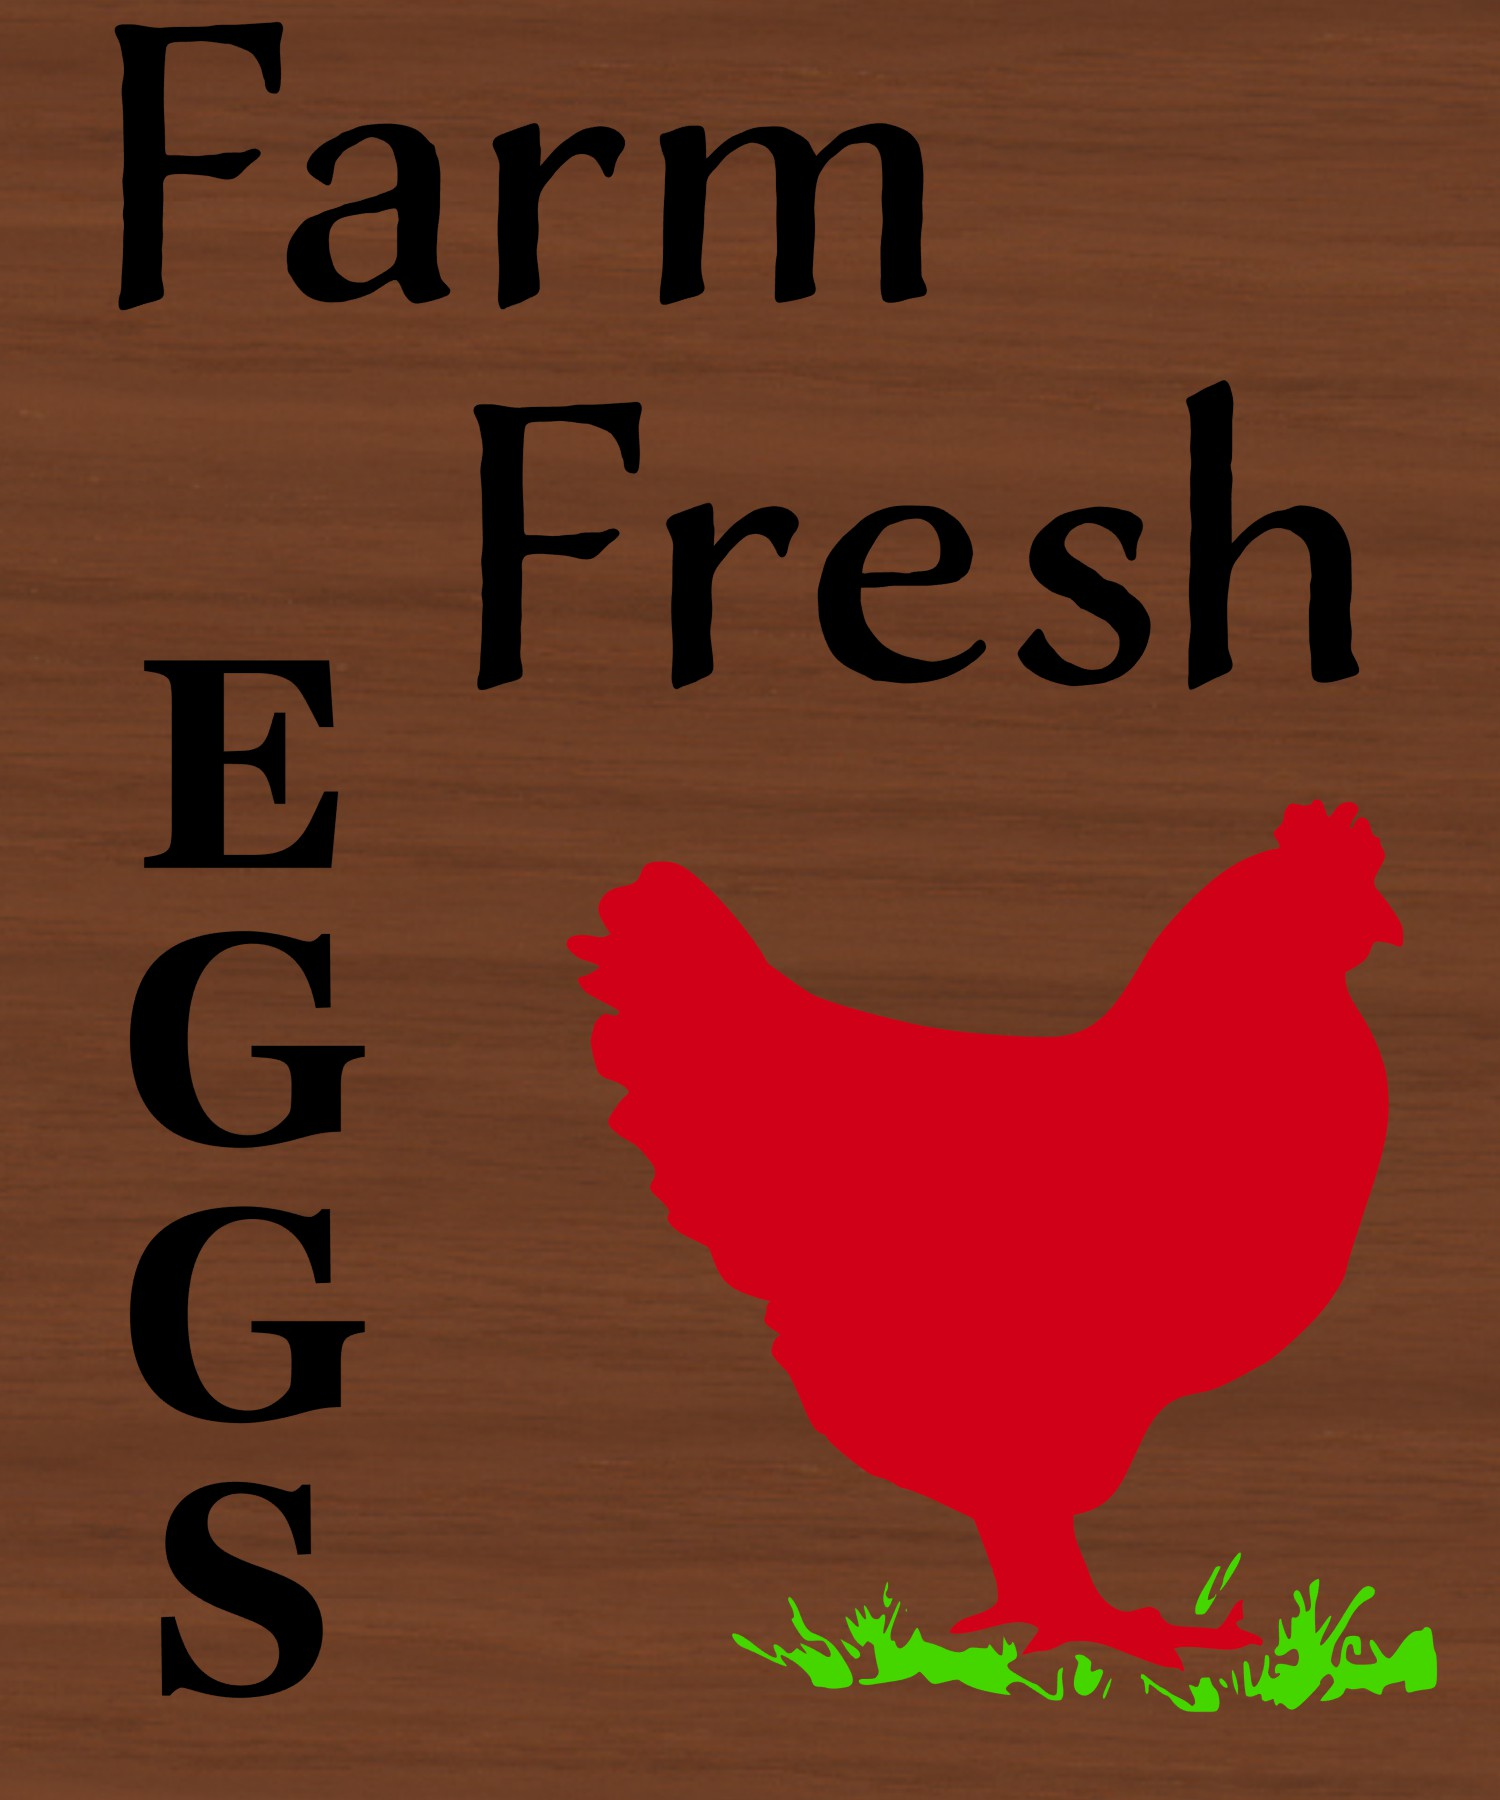 Farm fresh eggs with chicken example image 2